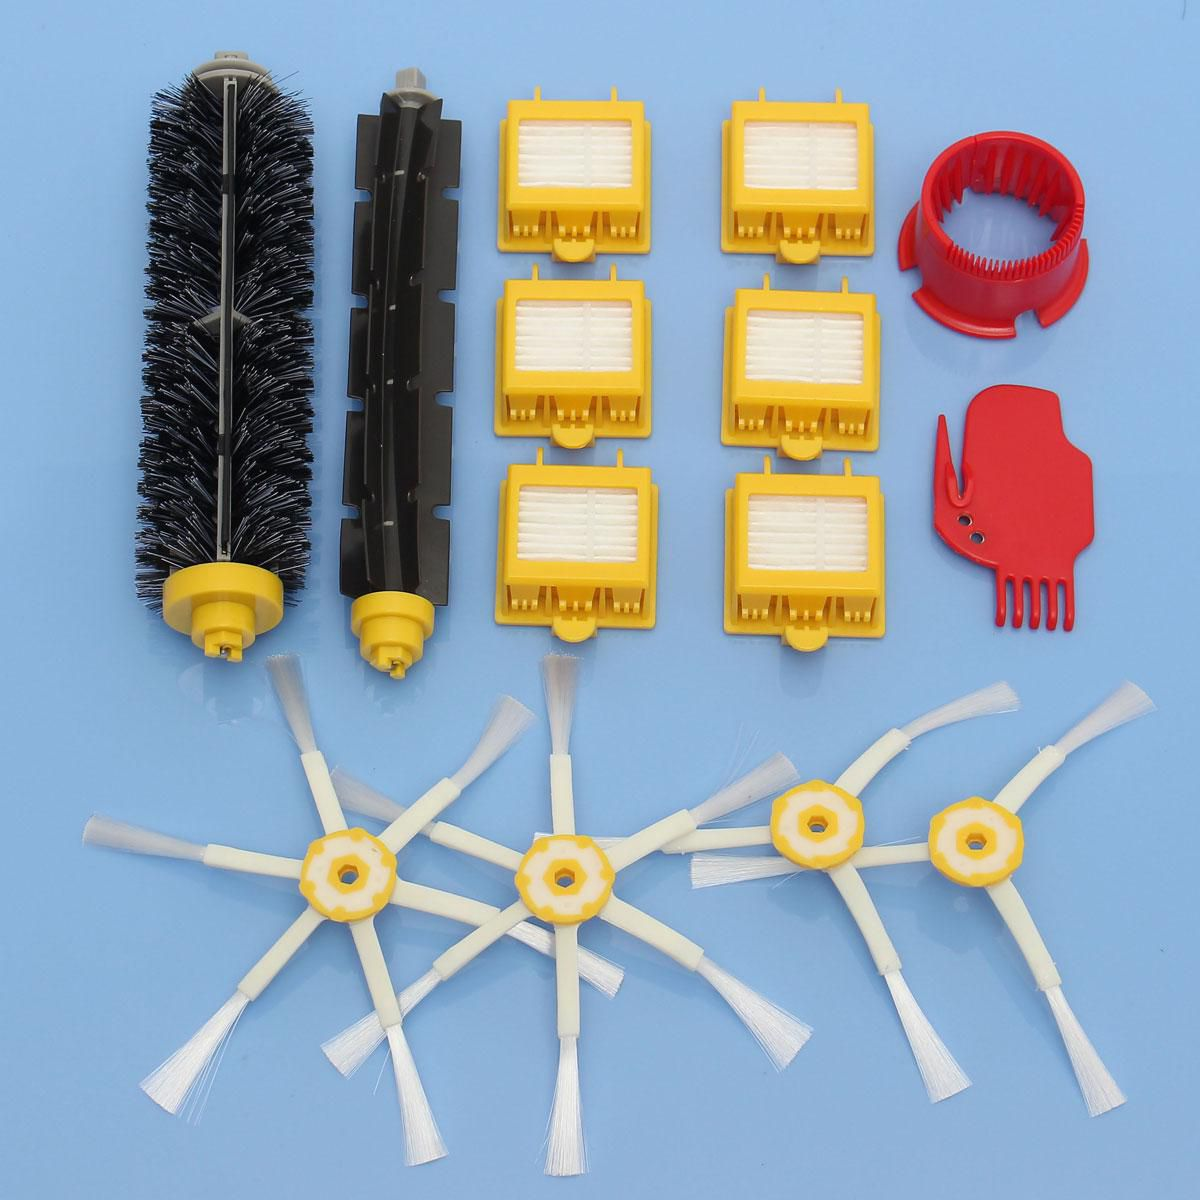 Filters Brush Pack Big Kit for iRobot Roomba 700 Series 3/6 Armed 760 770 780